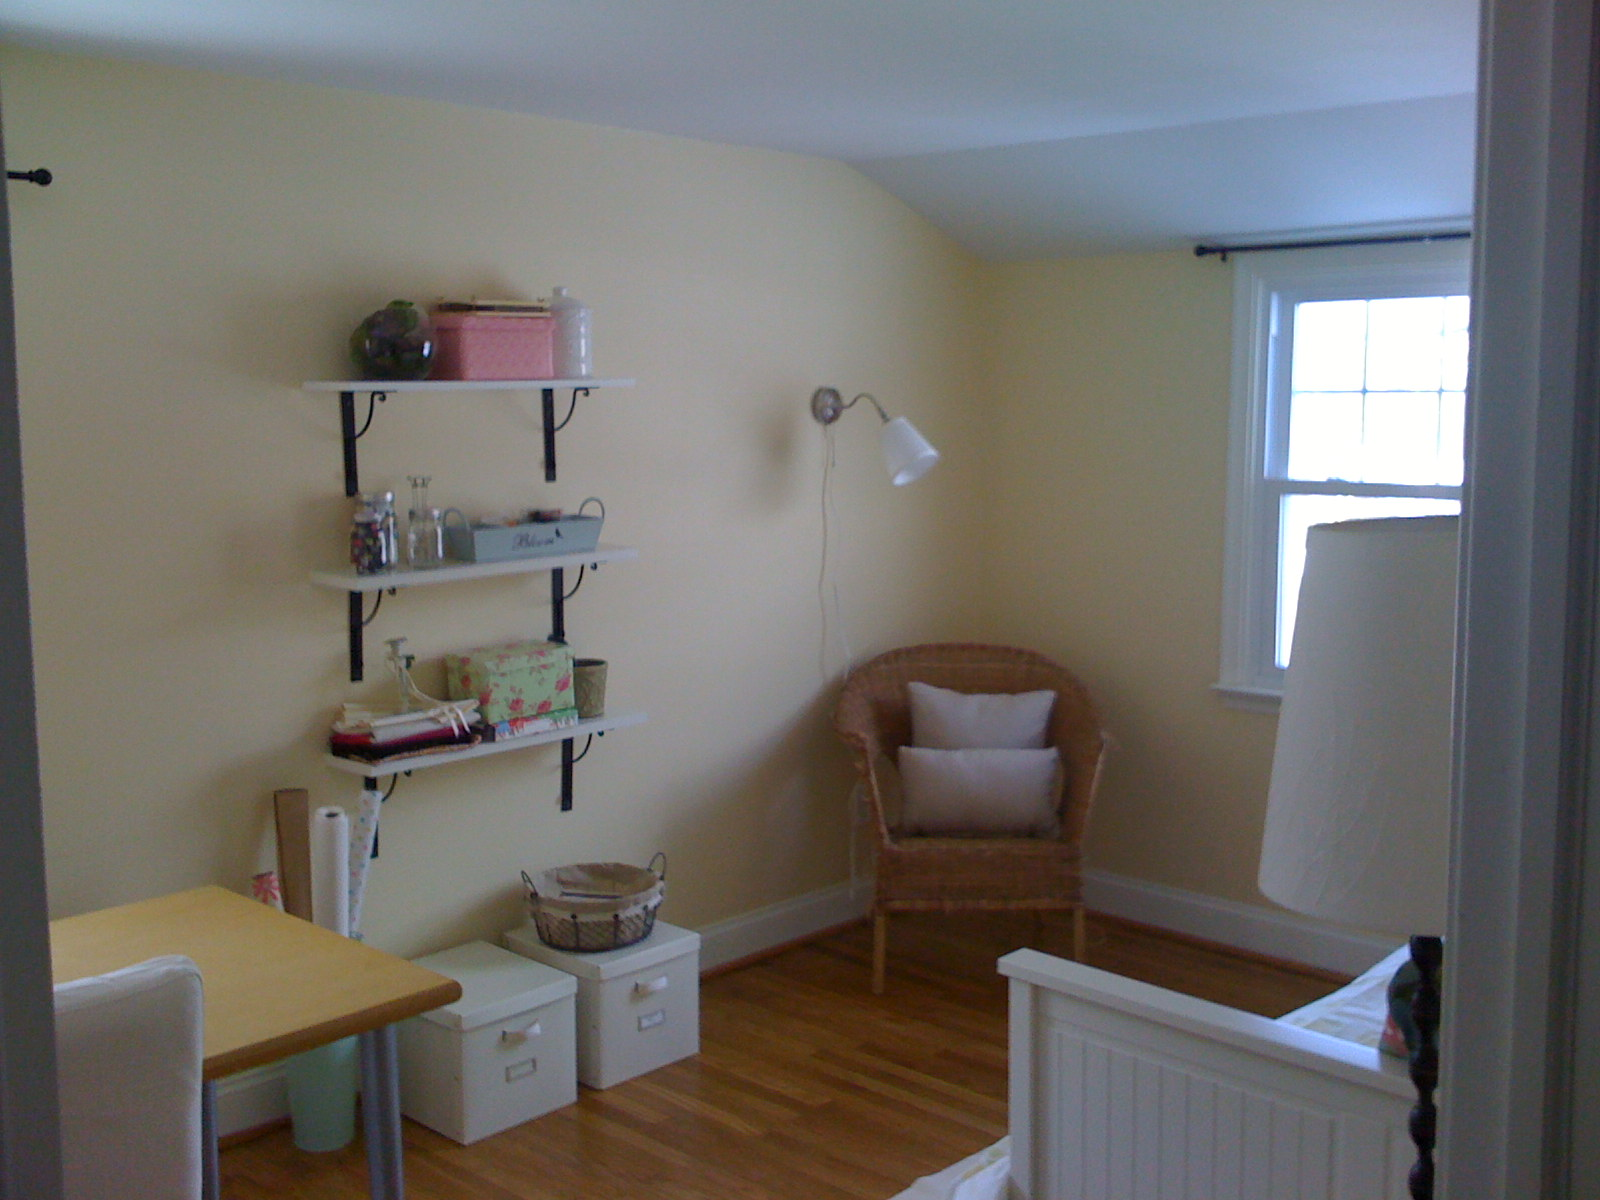 Decorating a Nursery for My Baby Girl! title=